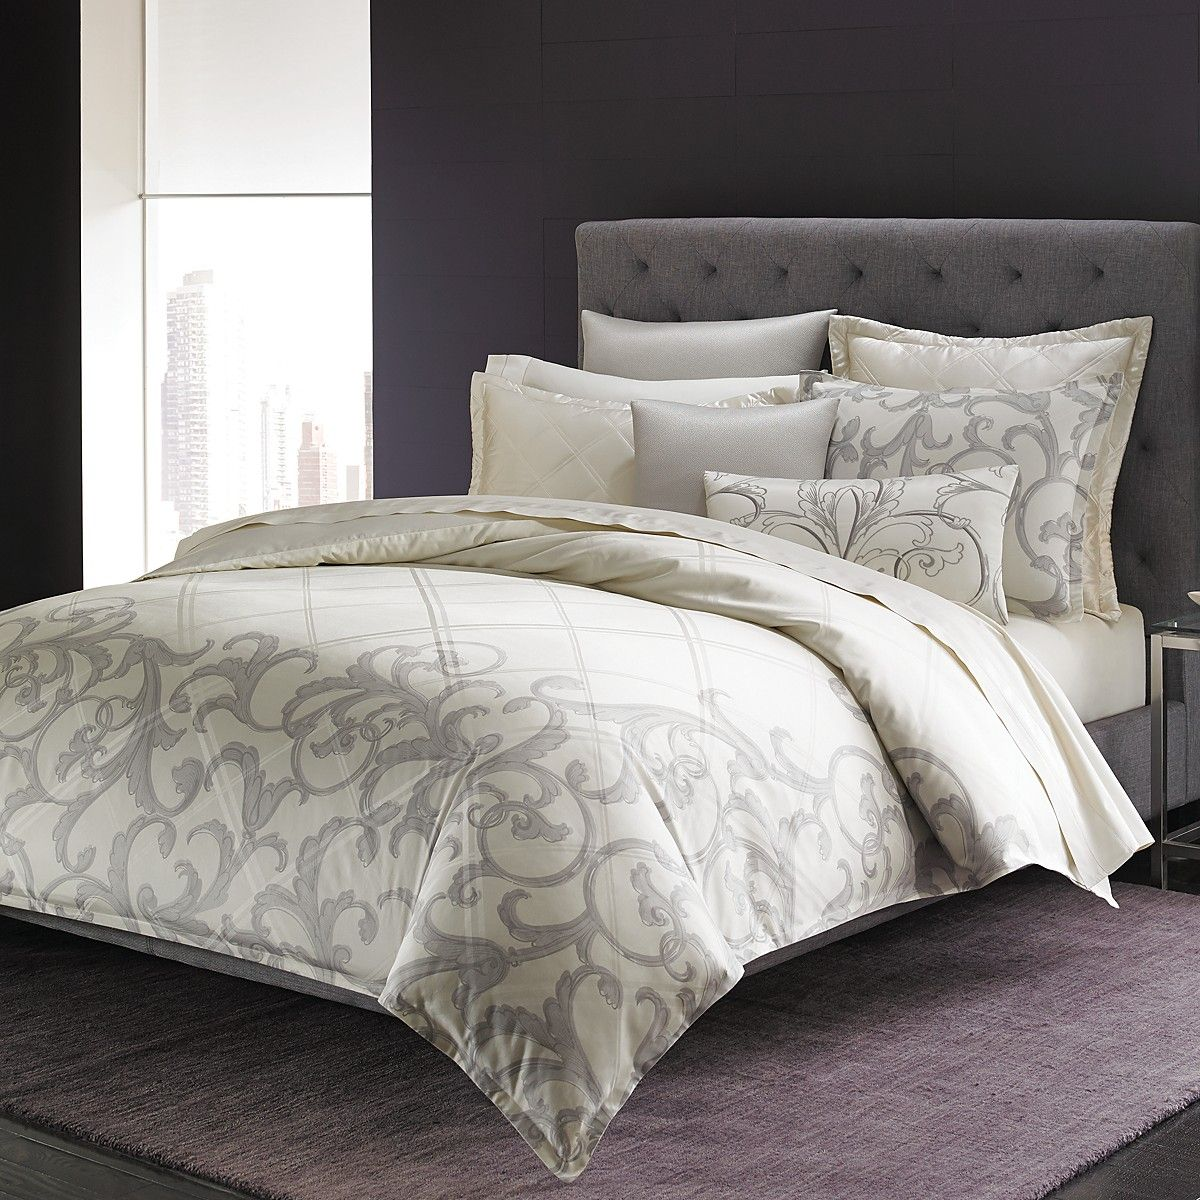 purple white window pillows treatments by bed beds comforters and gray carpet br comforter bloomingdales